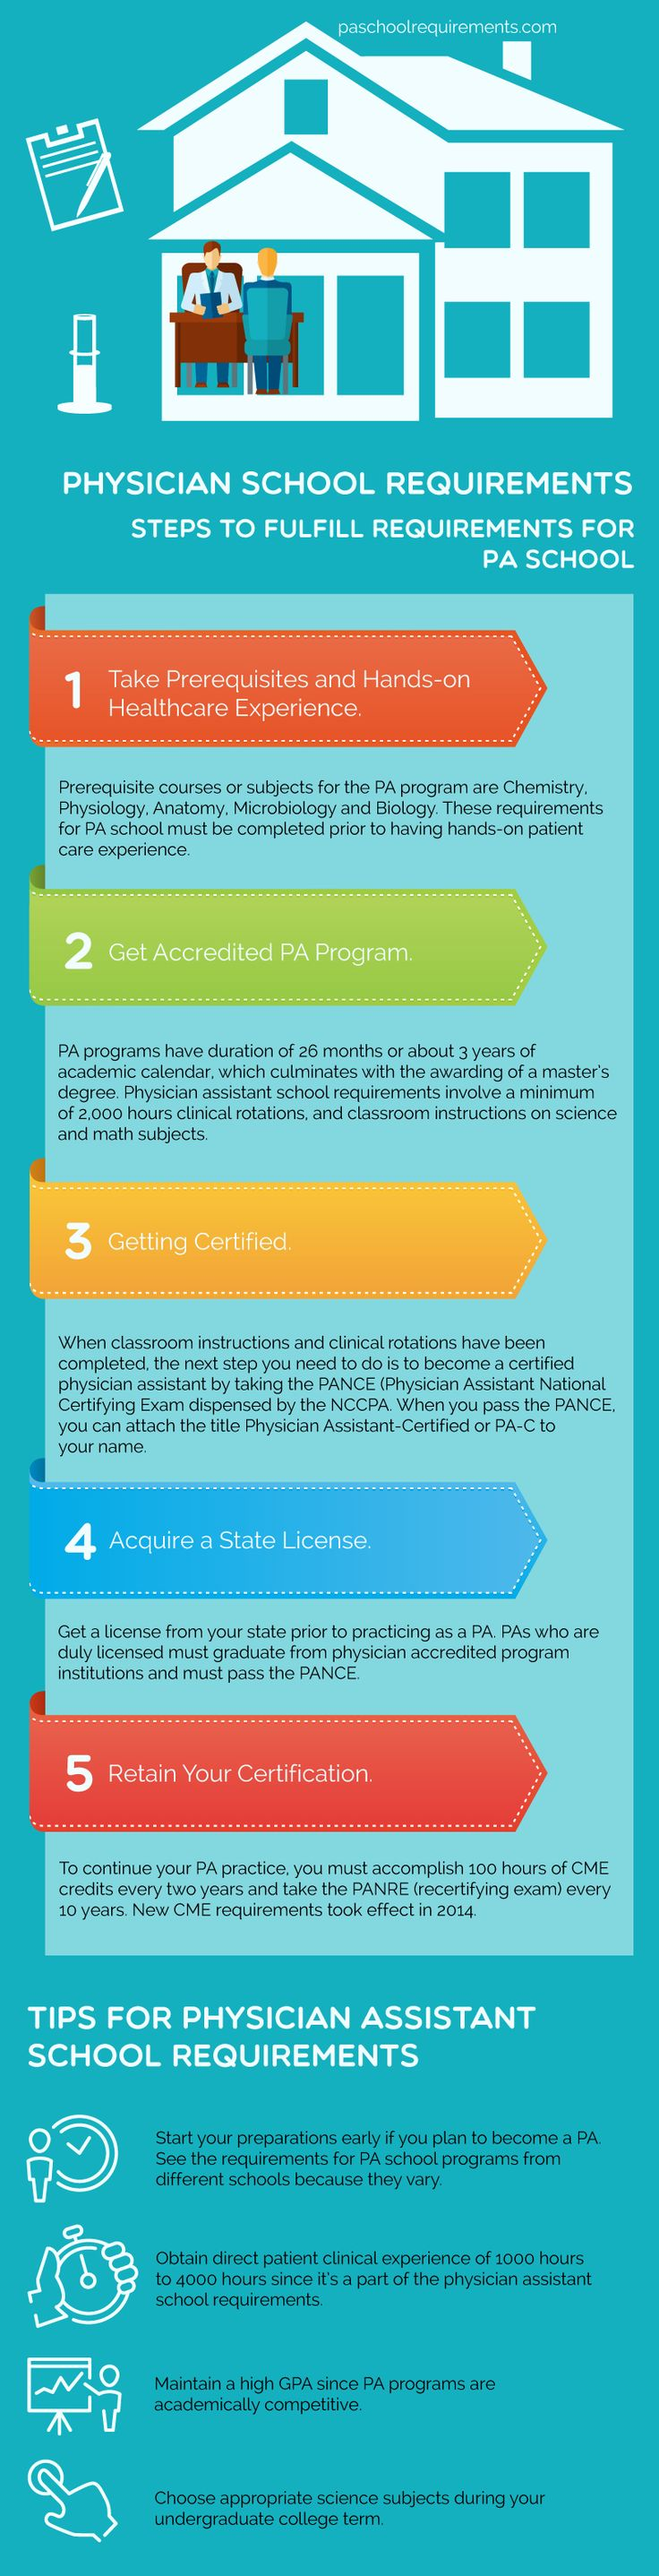 Steps to Fulfill Requirements for PA School